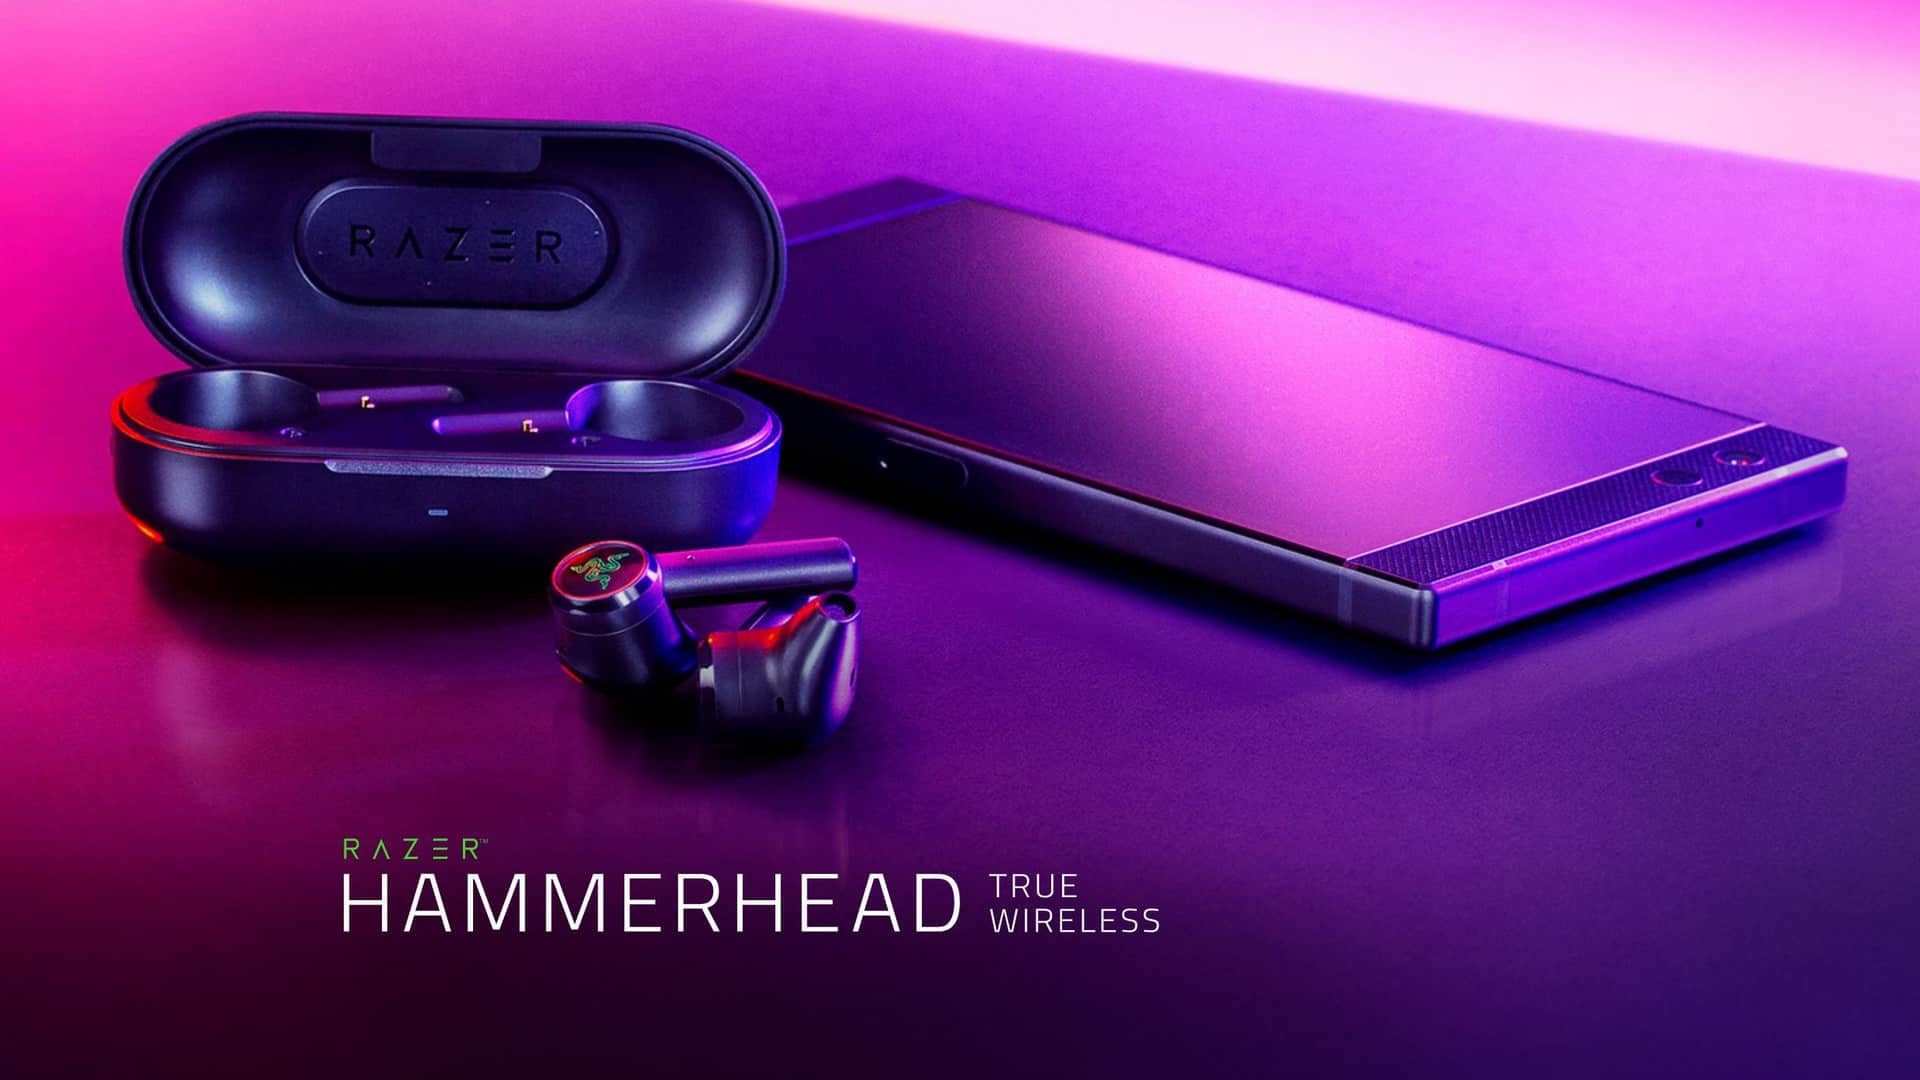 Eliminate Audio Lag With The Razer Hammerhead True Wireless Earbuds